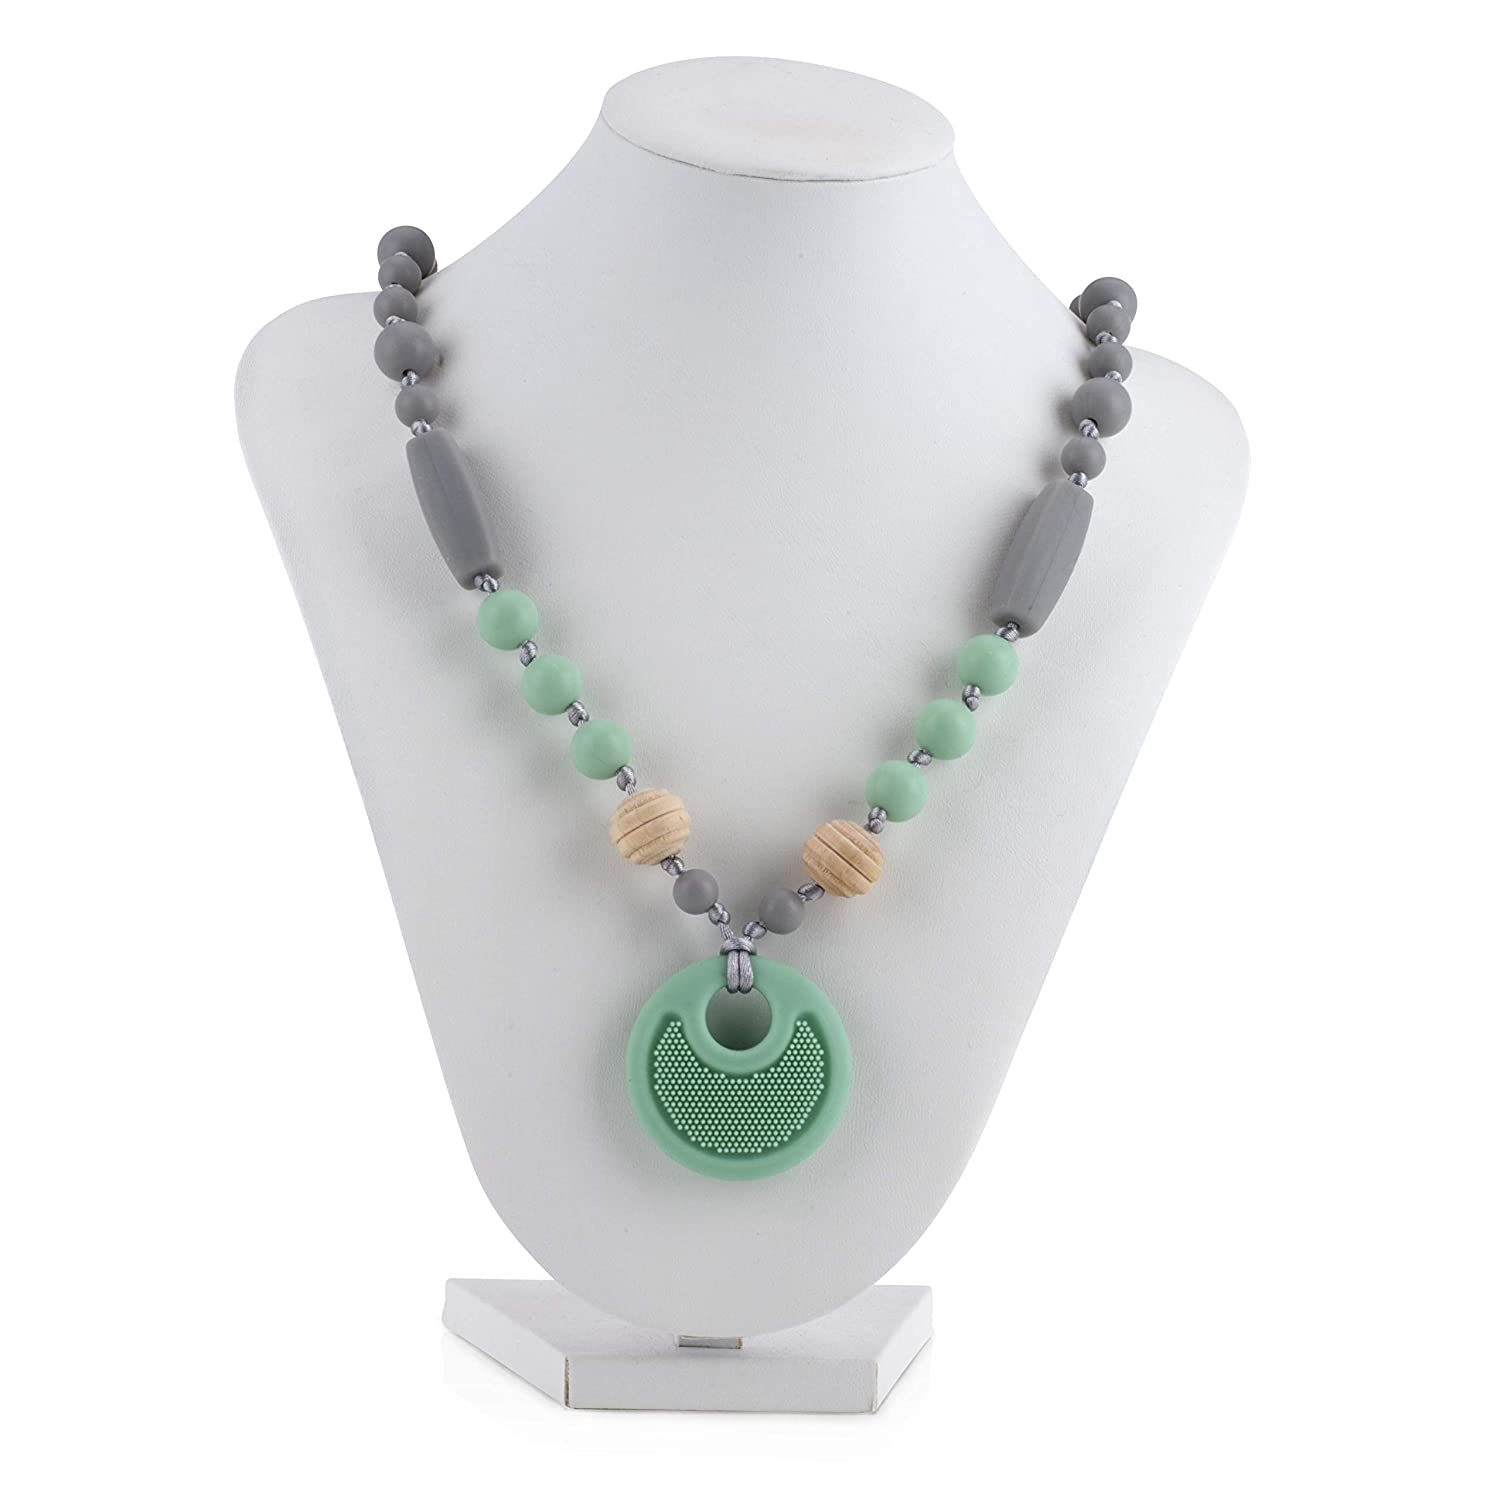 Nuby Baby Teething Trends Silicone Pendant Necklace for Moms with Wooden & Silicone Beads (983)